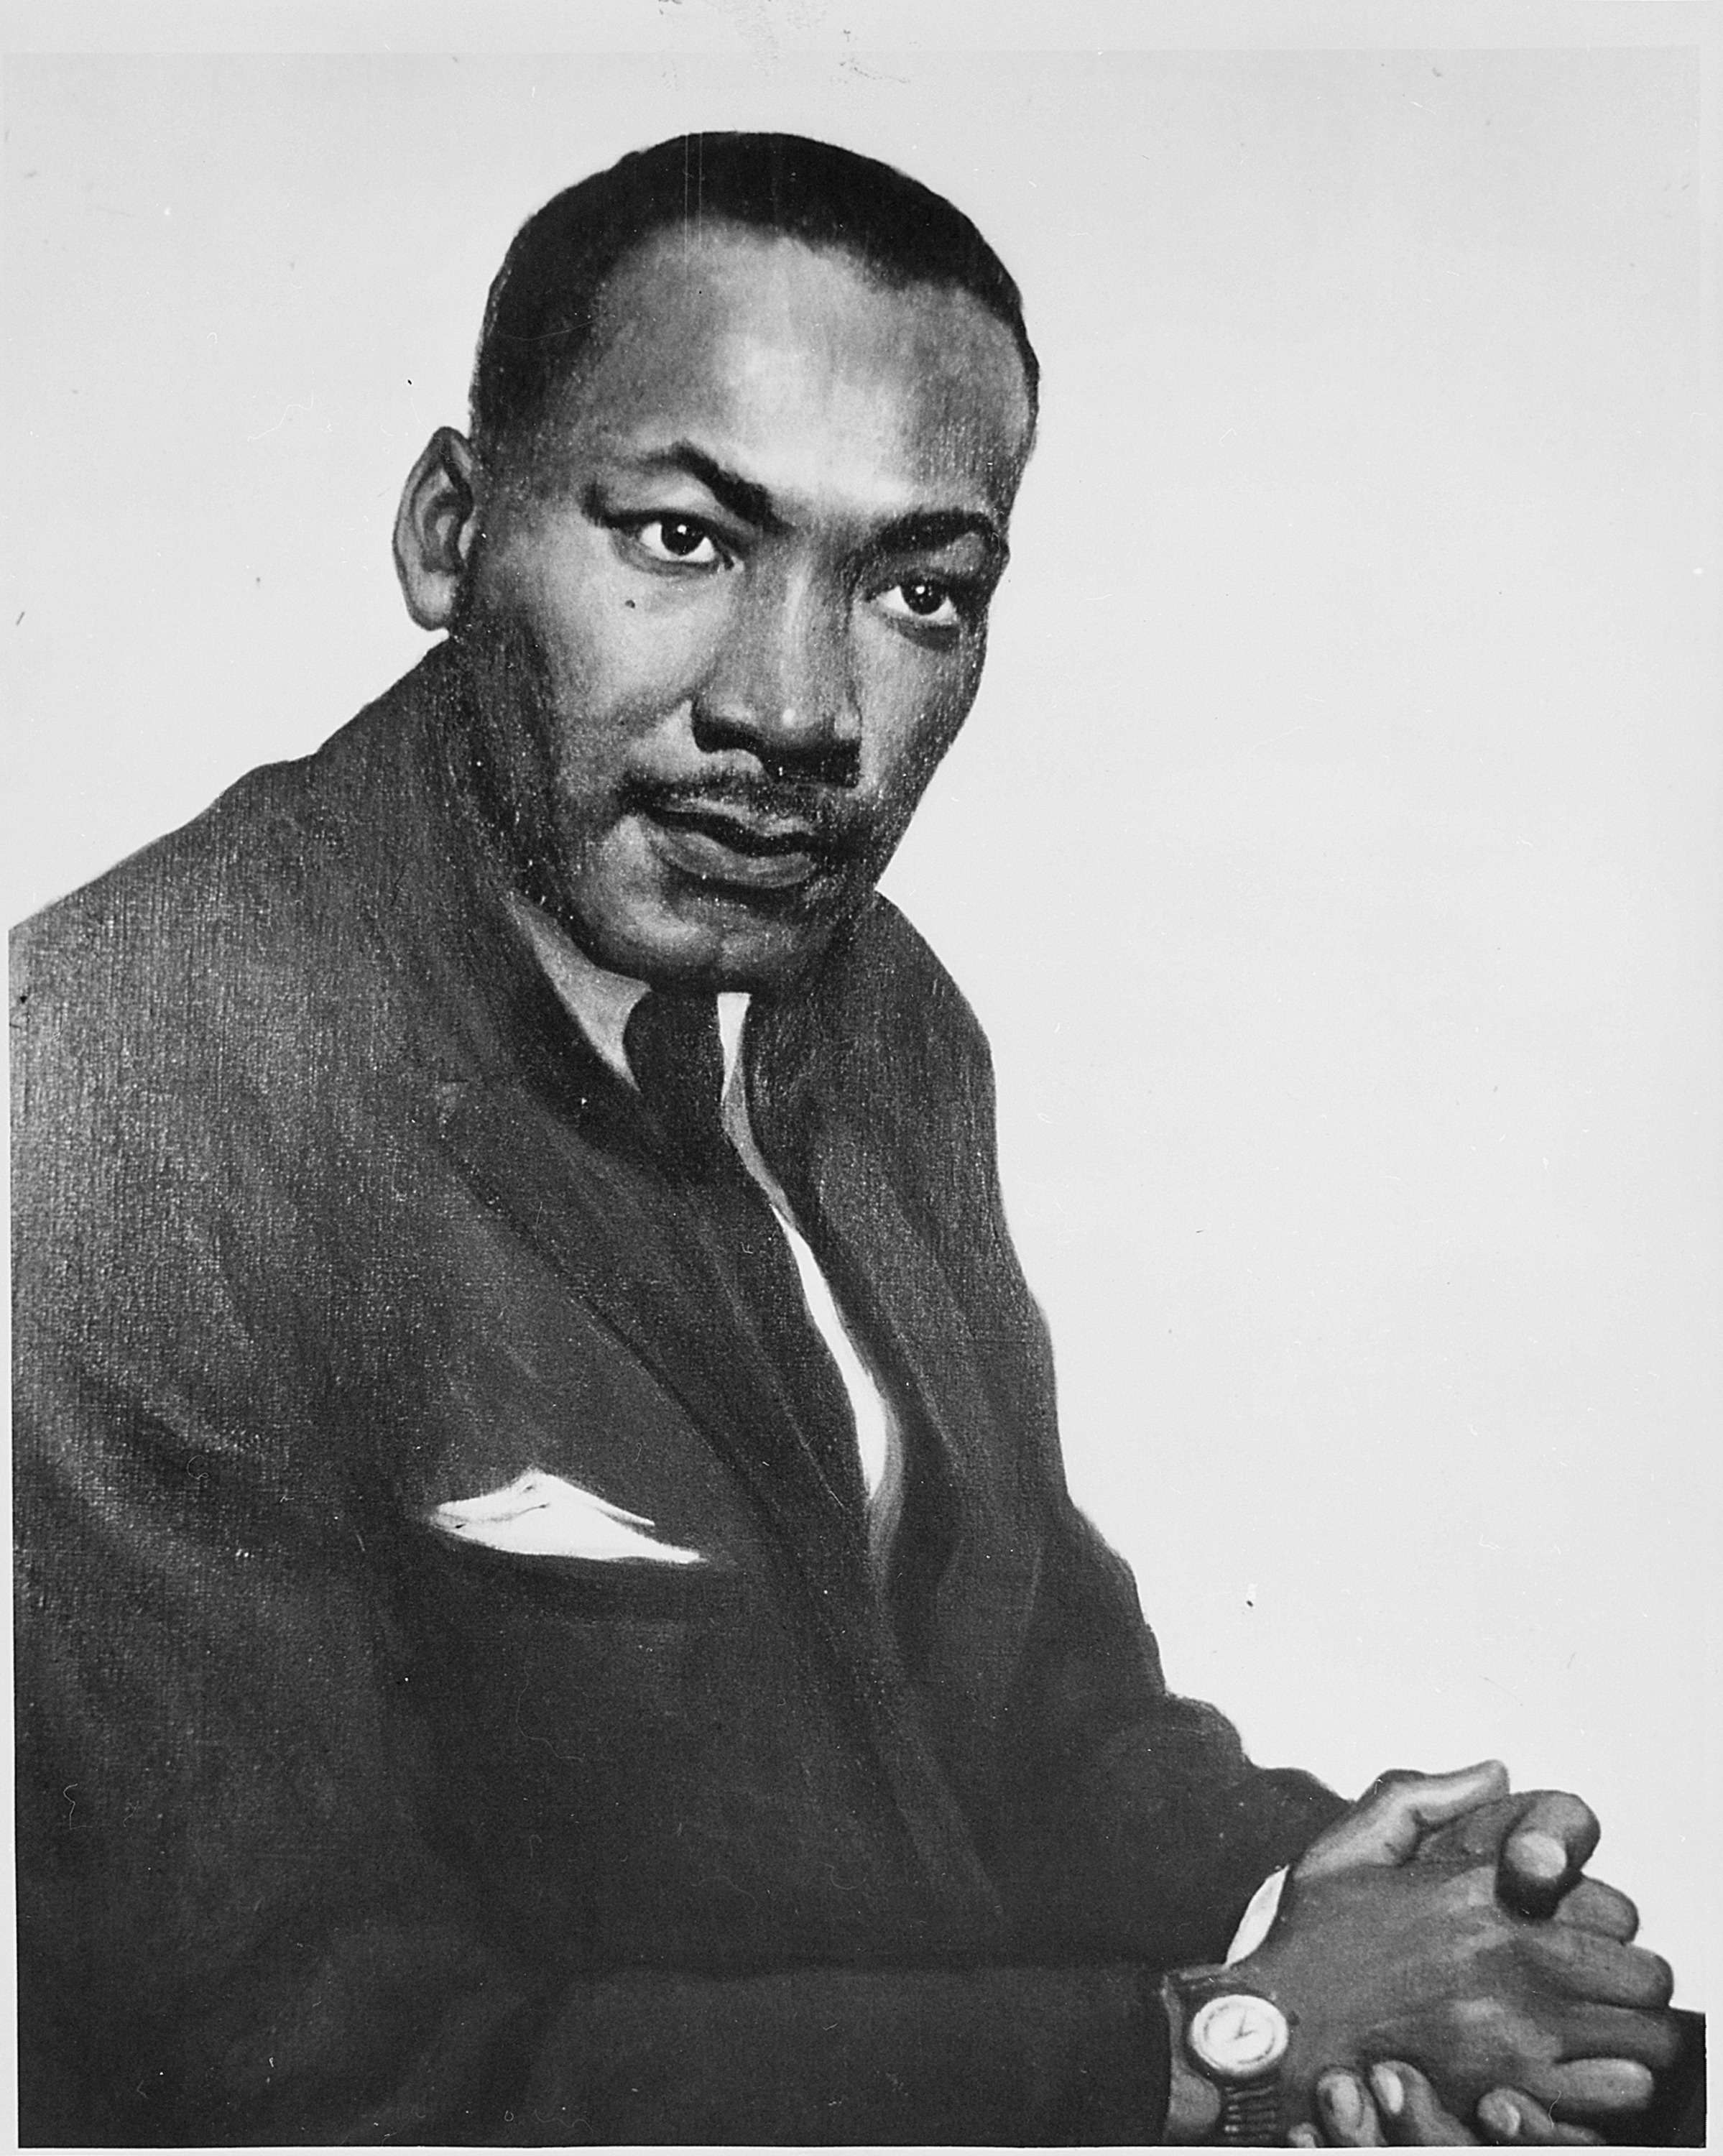 Portrait of Martin Luther King, Jr